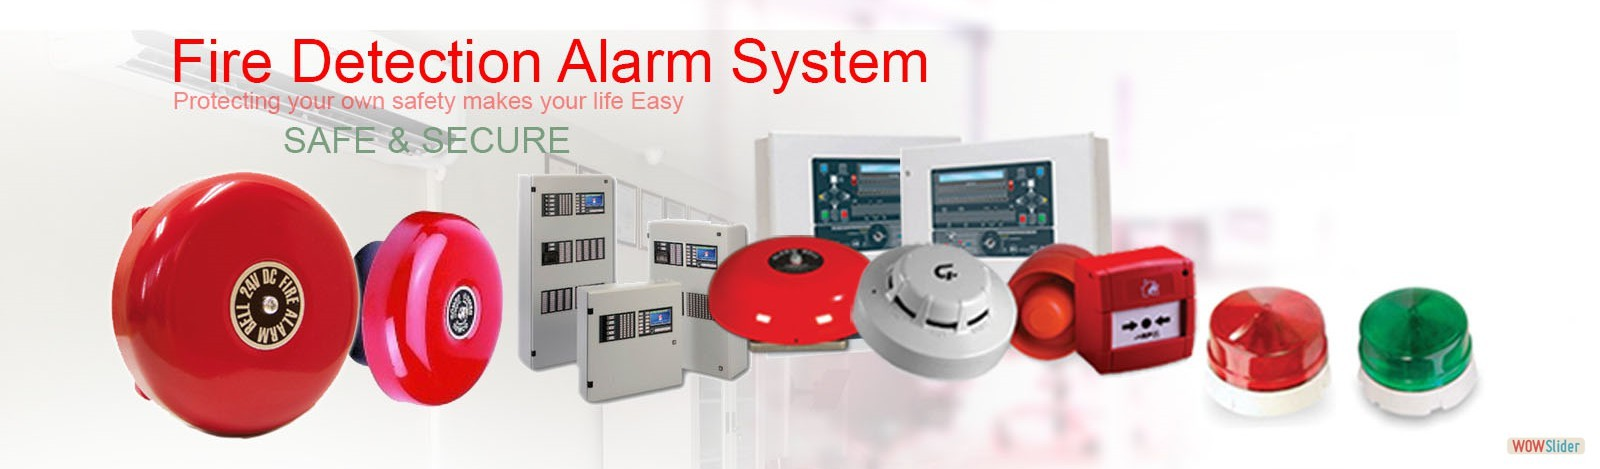 Alarm, Detection and Security Solutions